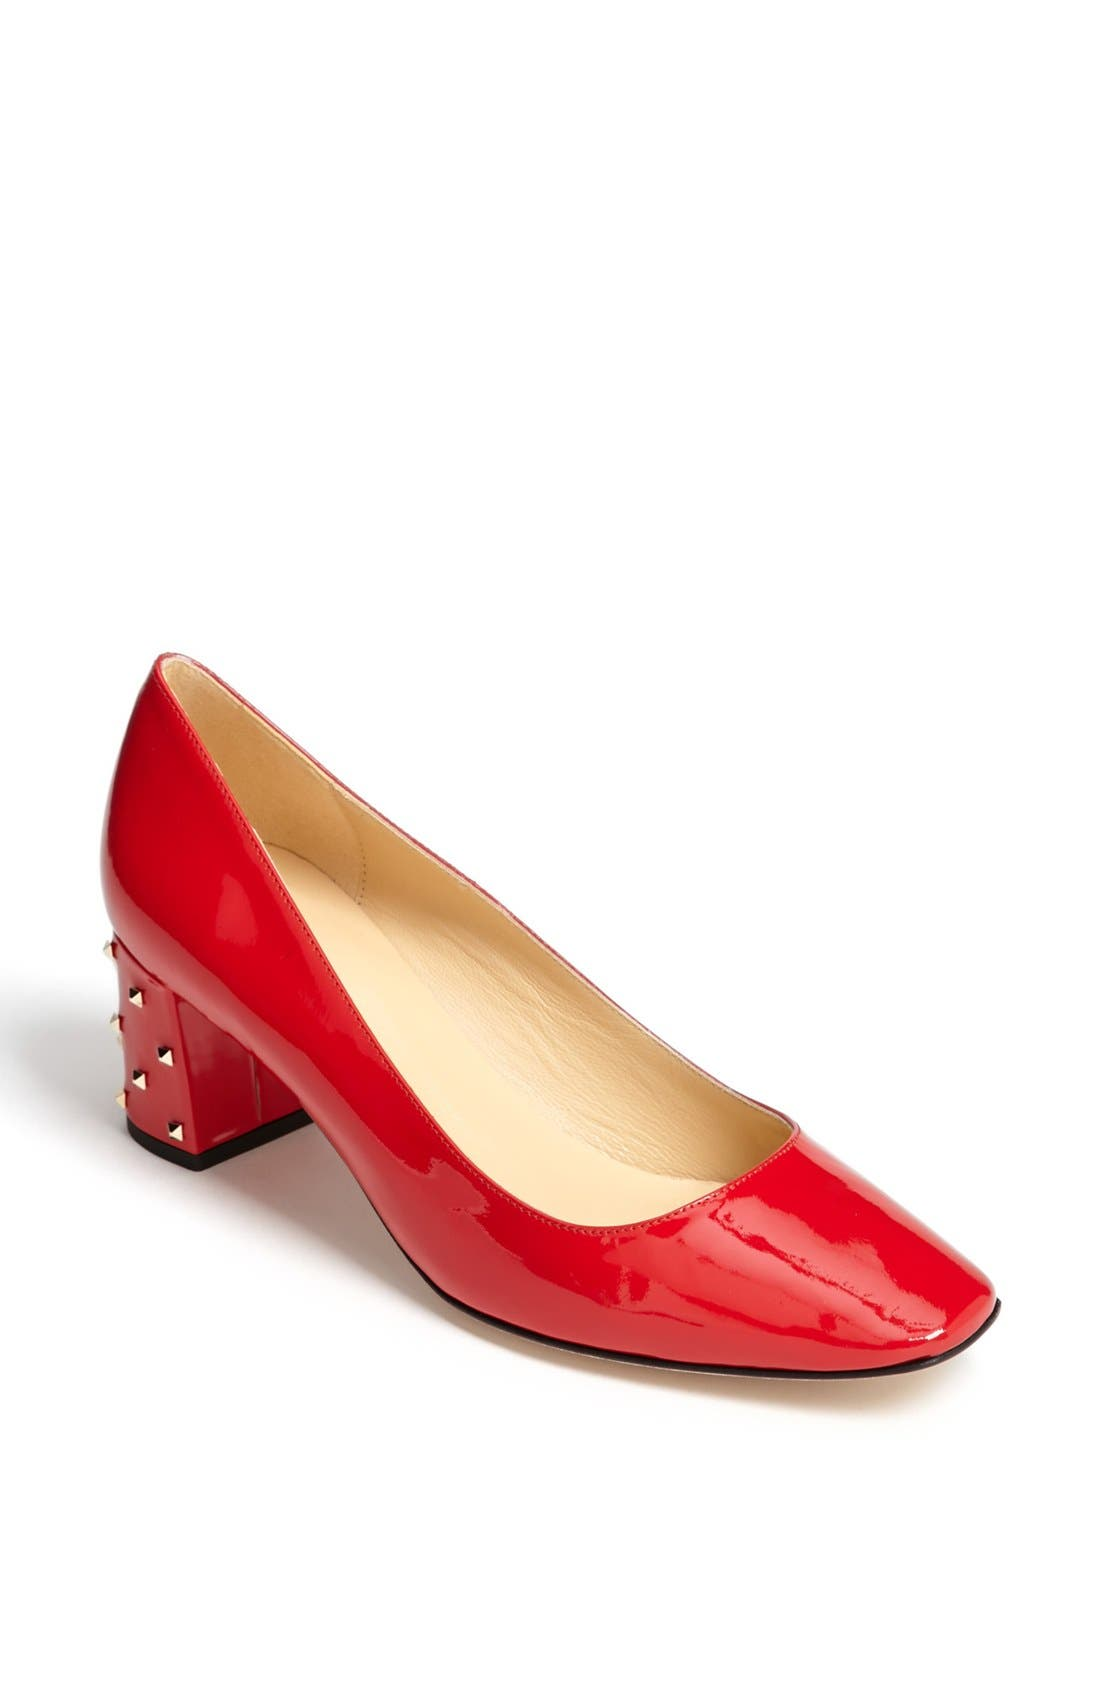 Alternate Image 1 Selected - kate spade new york 'derena' pump